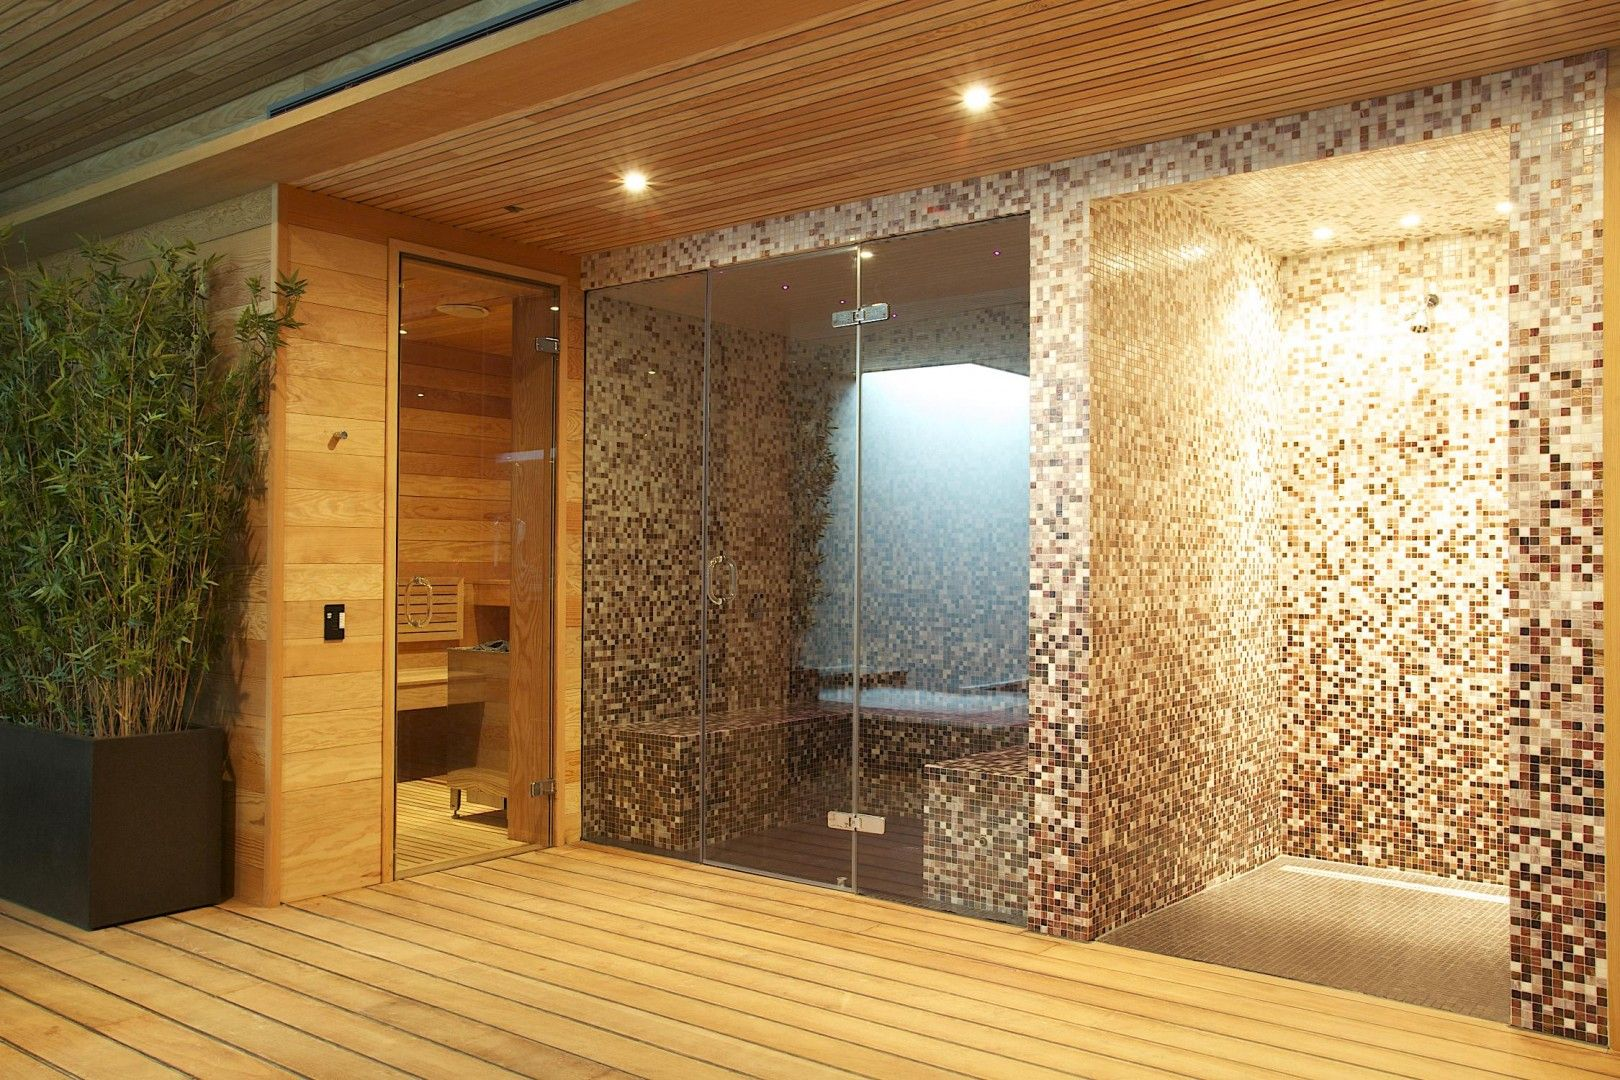 basement spa room sk p google - Home Steam Room Design